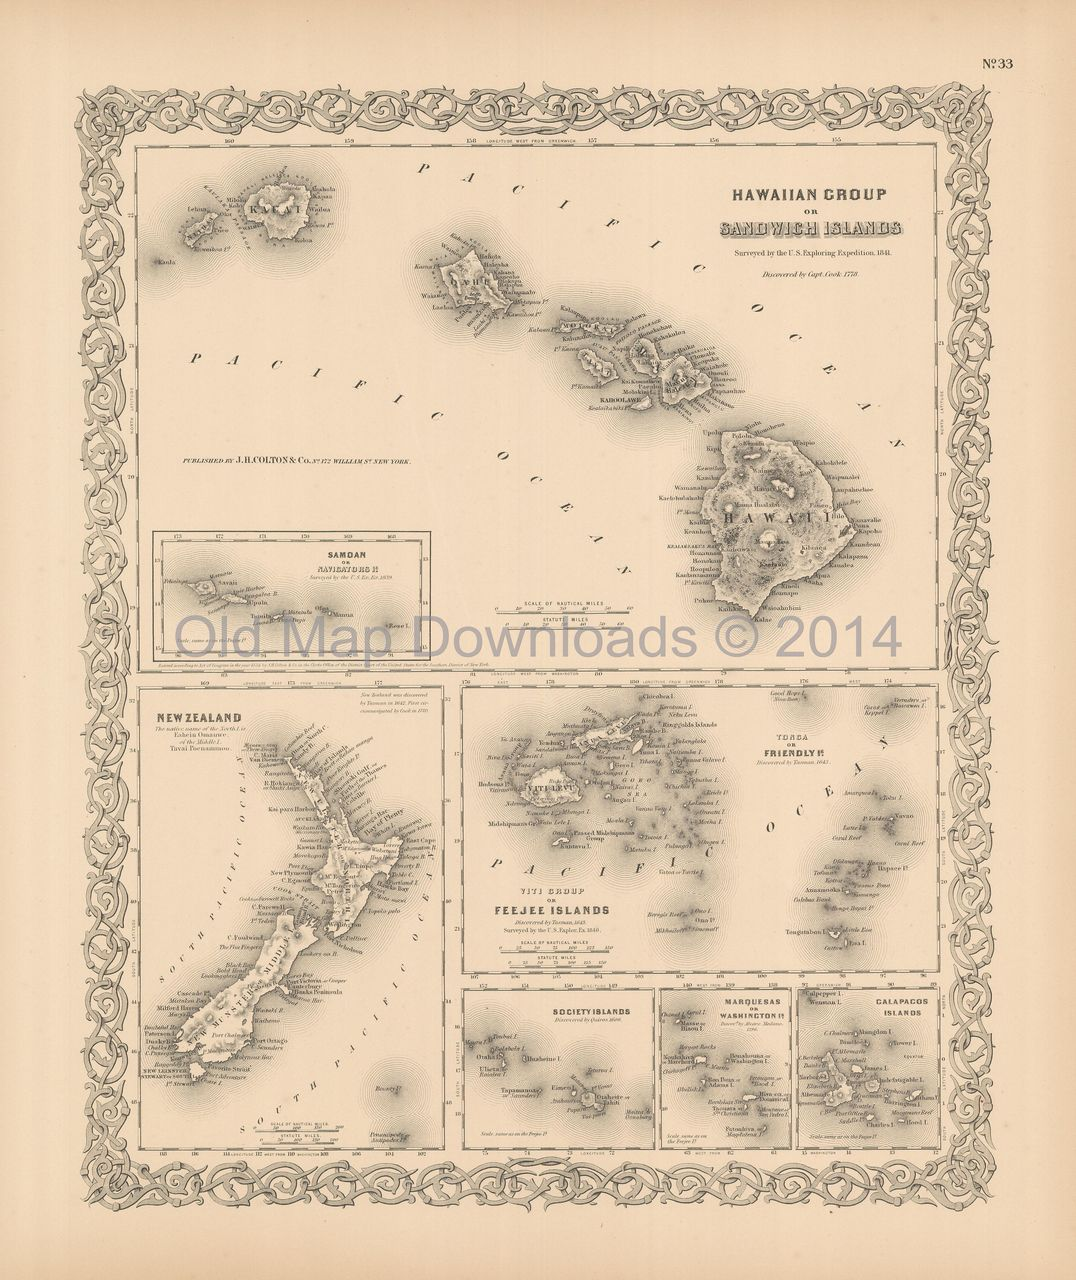 Download New Zealand Map.Hawaii New Zealand Old Map Colton 1856 Digital Image Scan Download